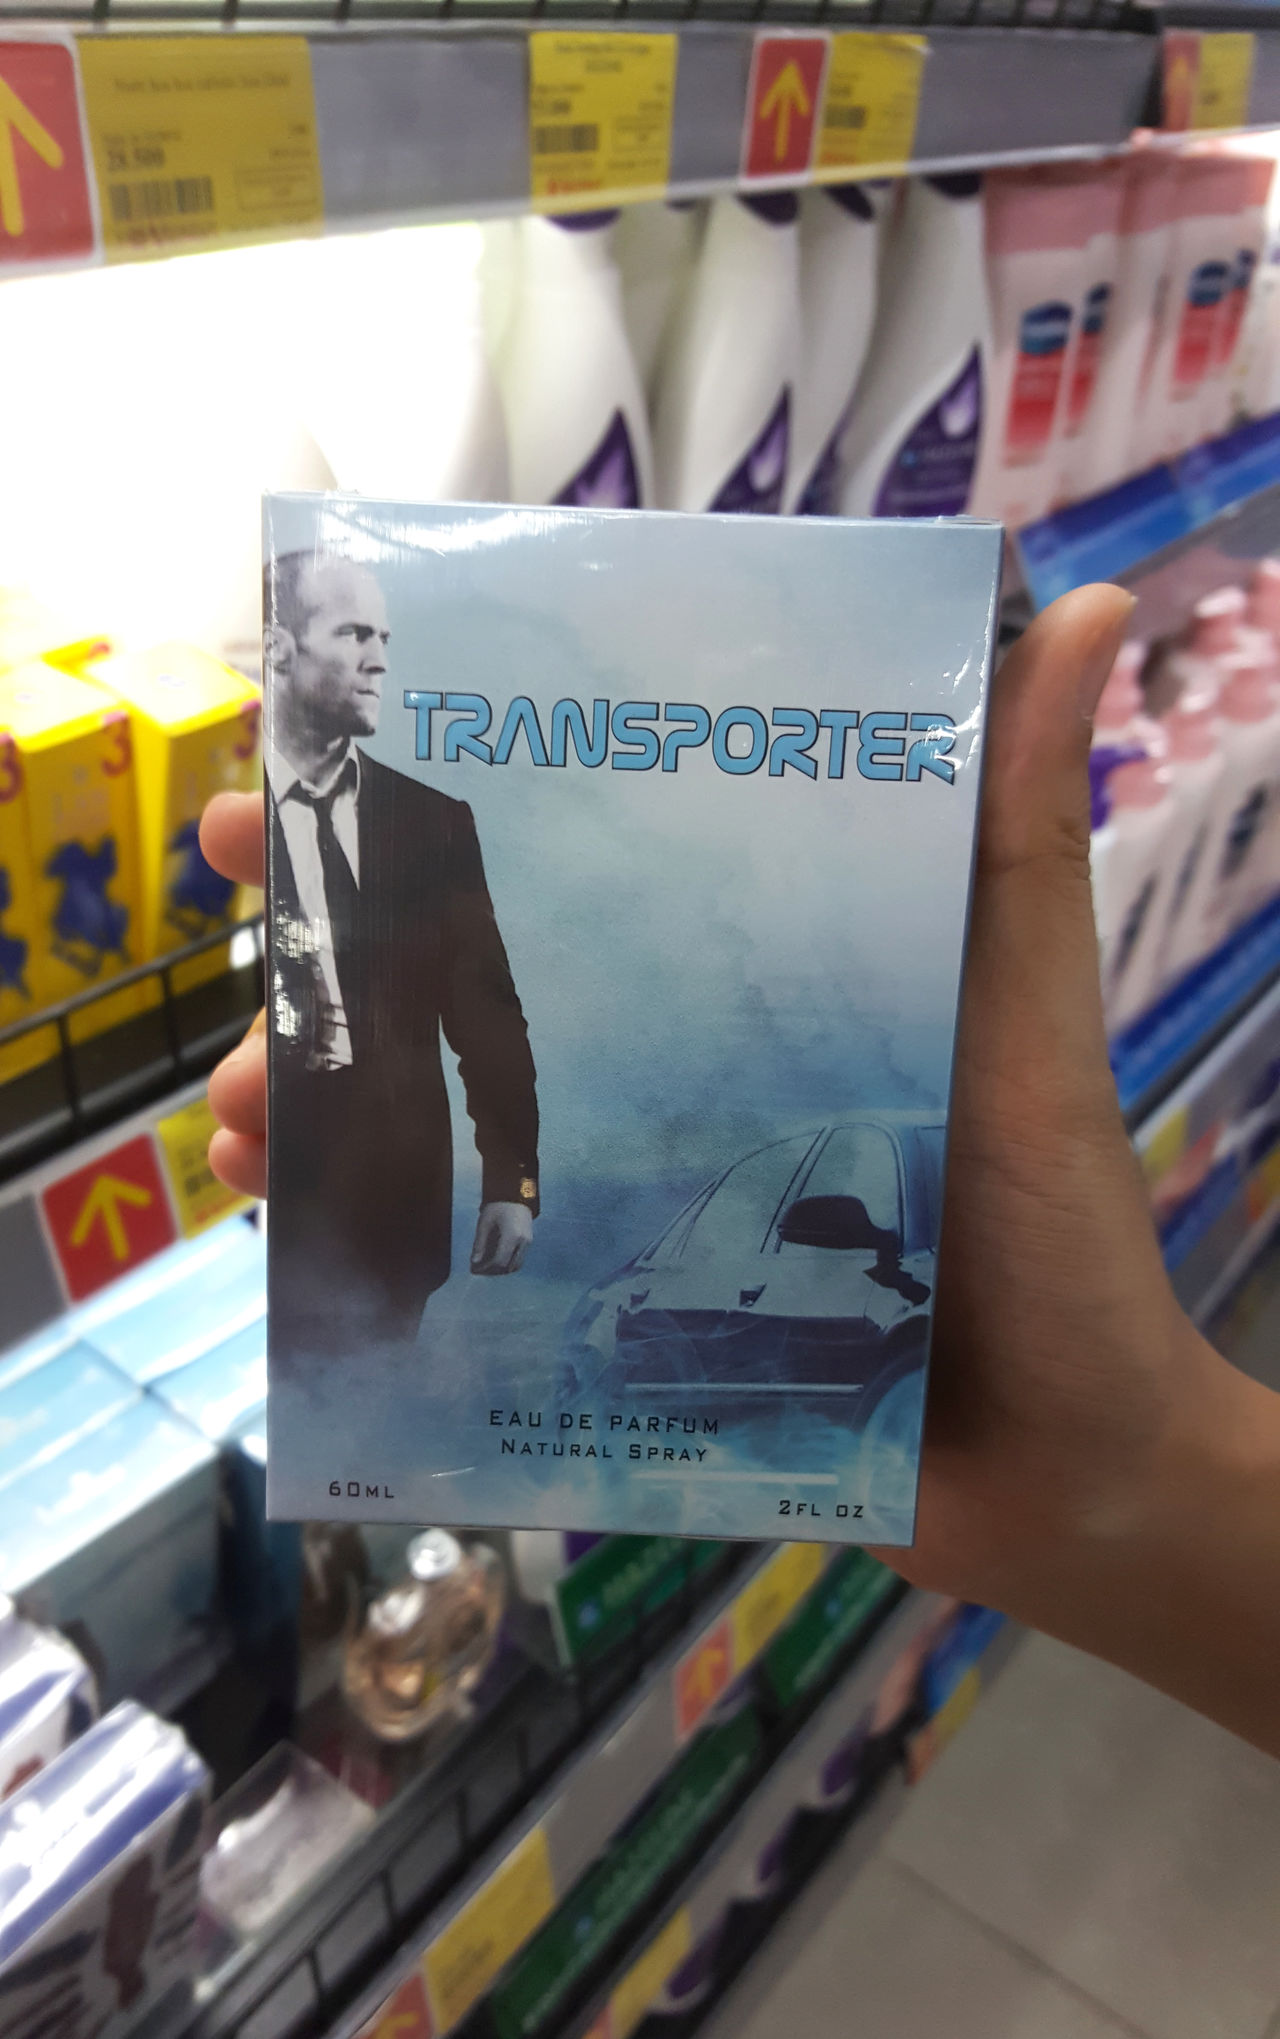 Movie-inspired packaging for Vietnamese deodorant, in Da Nang supermarket. Actors Actors & Actresses Buying Characters Da Nang Deodorants Design Editorial  Holding Indoors  Jason Statham Moviestar Packaging Products Supermarkets Text Transporter Vertical Vietnam Western Script